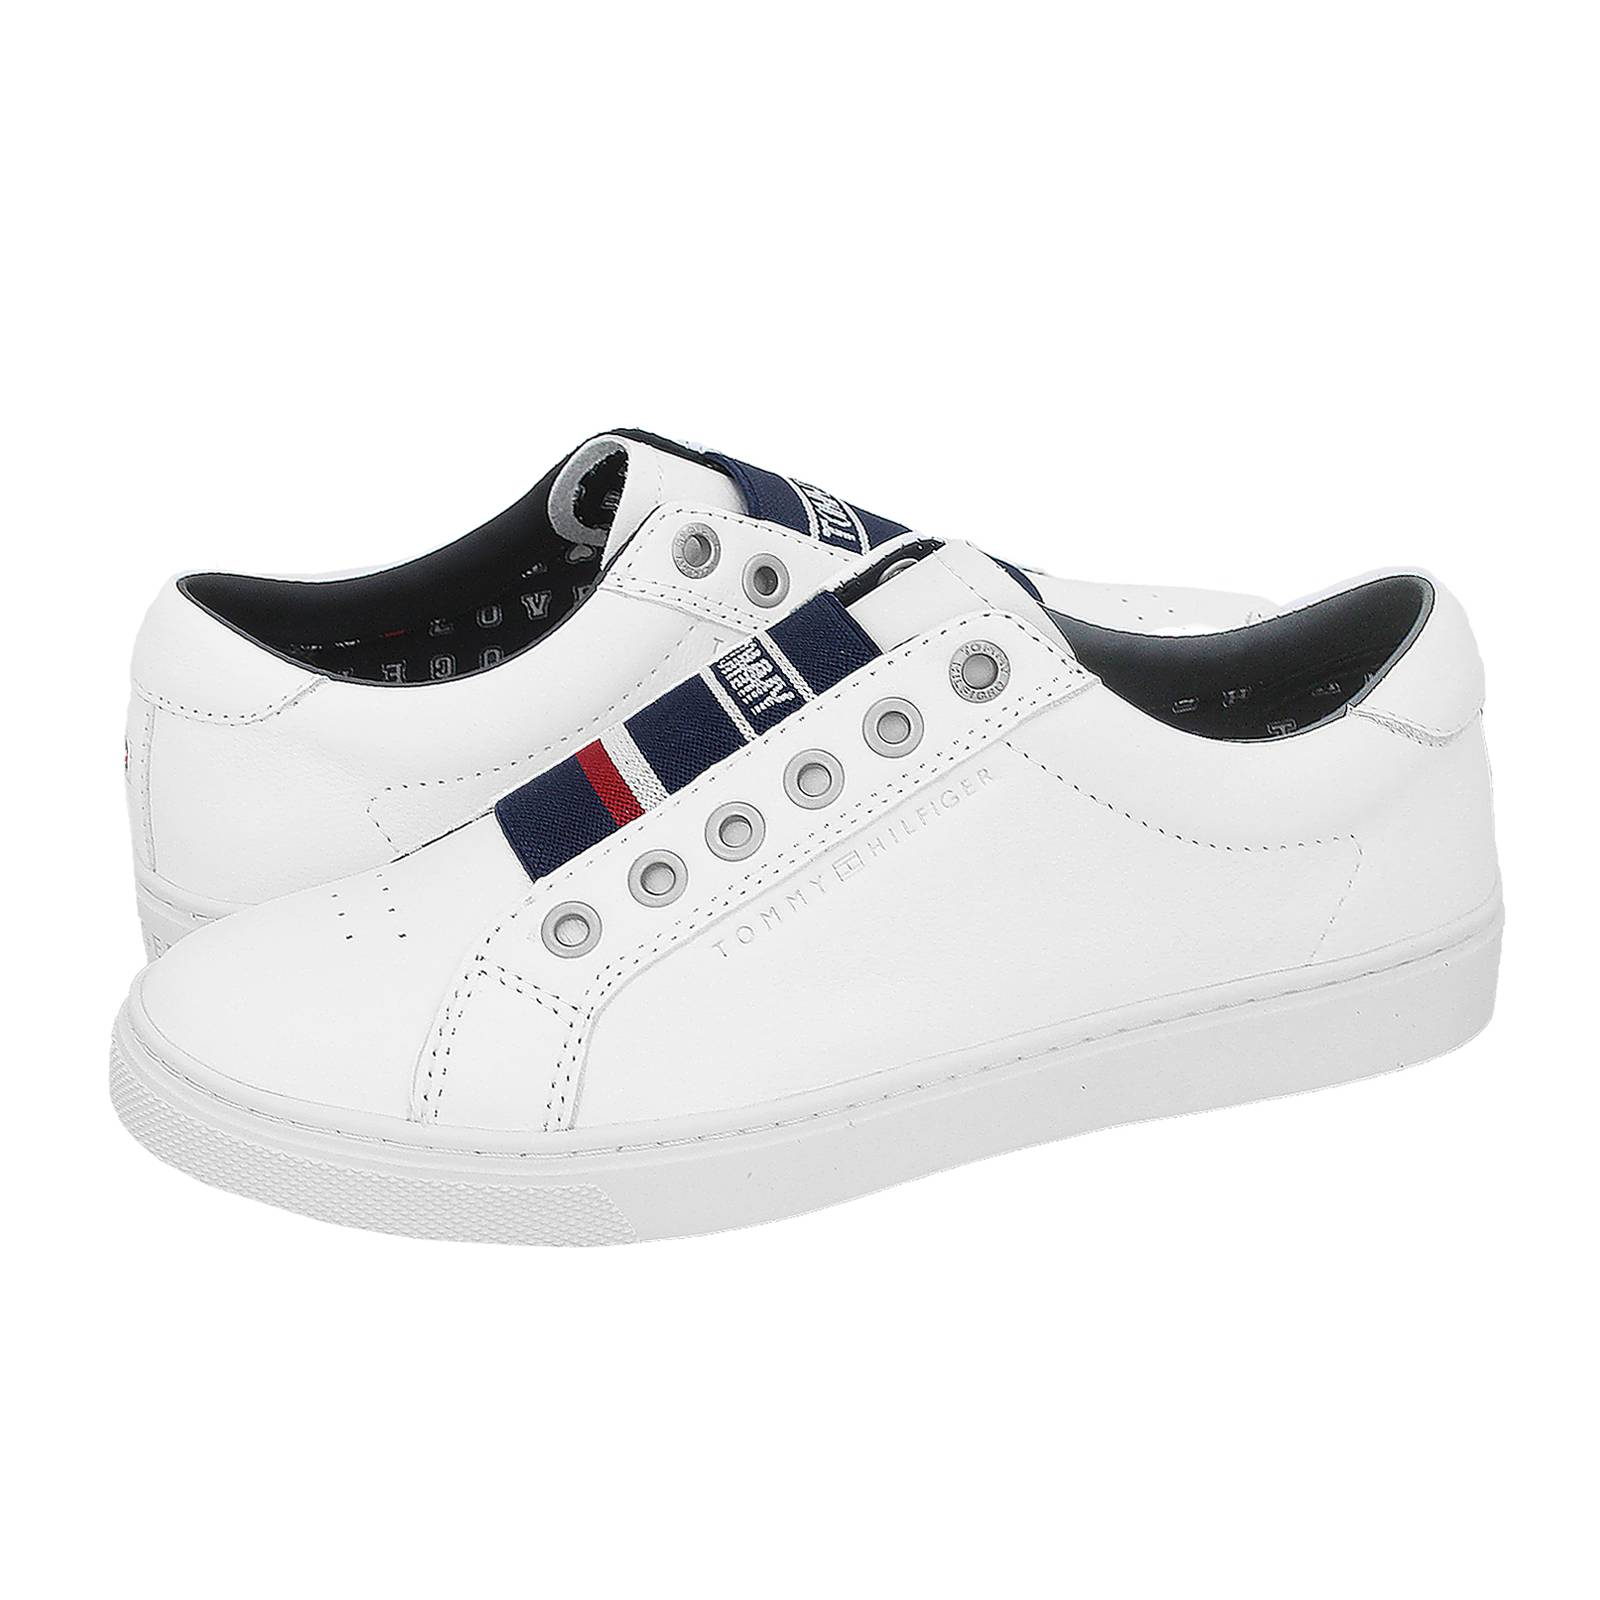 313e046dfd Tommy Elastic City Sneaker - Tommy Hilfiger Women's casual shoes ...